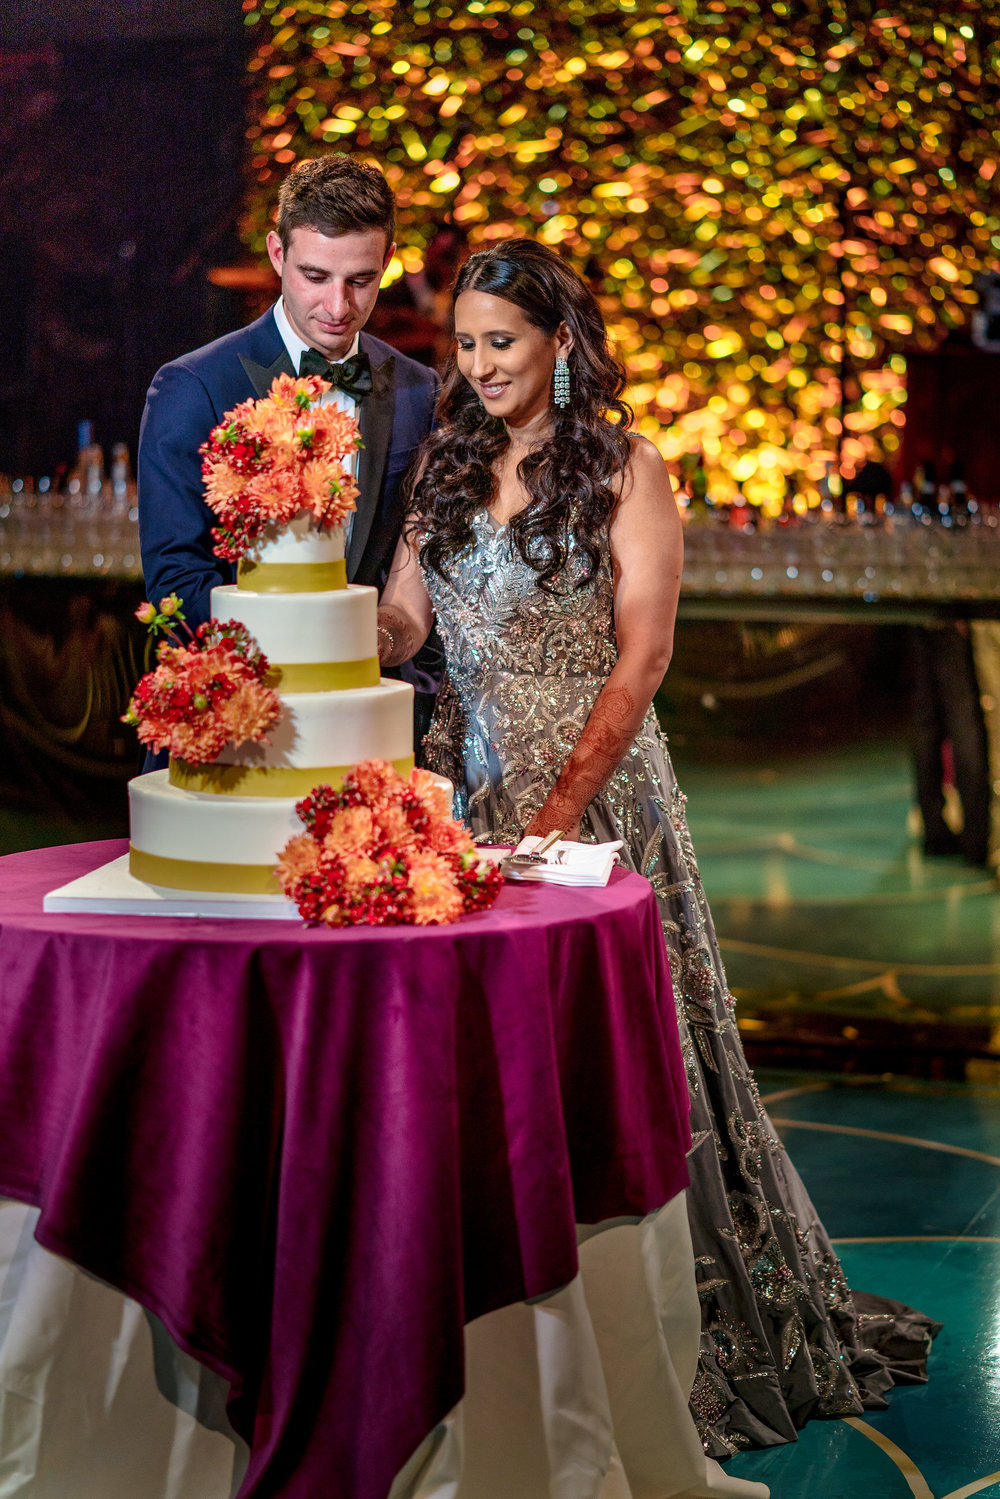 INDIAN WEDDING BRIDE AND GROOM CAKE SHOT.JPG